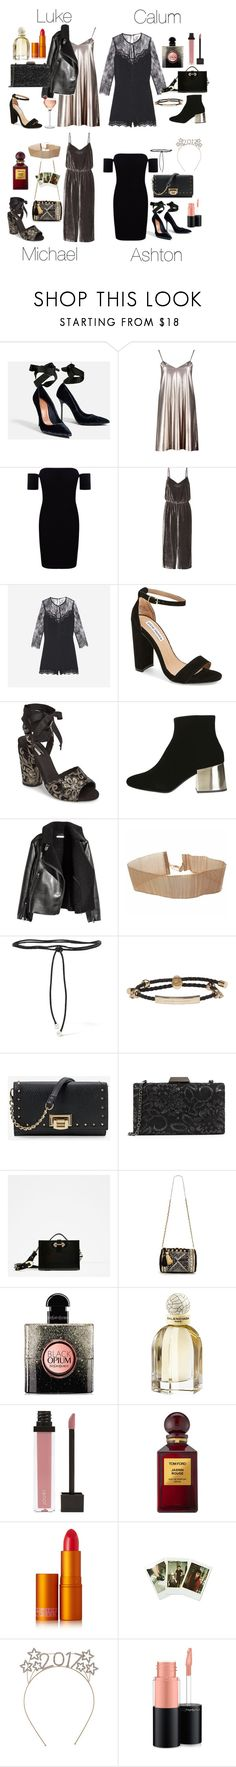 """NYE Outfits"" by fivesecondsofinspiration ❤ liked on Polyvore featuring Boohoo, Madewell, Steve Madden, Topshop, Aamaya by Priyanka, Alexander McQueen, White House Black Market, Sondra Roberts, Miss Selfridge and Yves Saint Laurent"